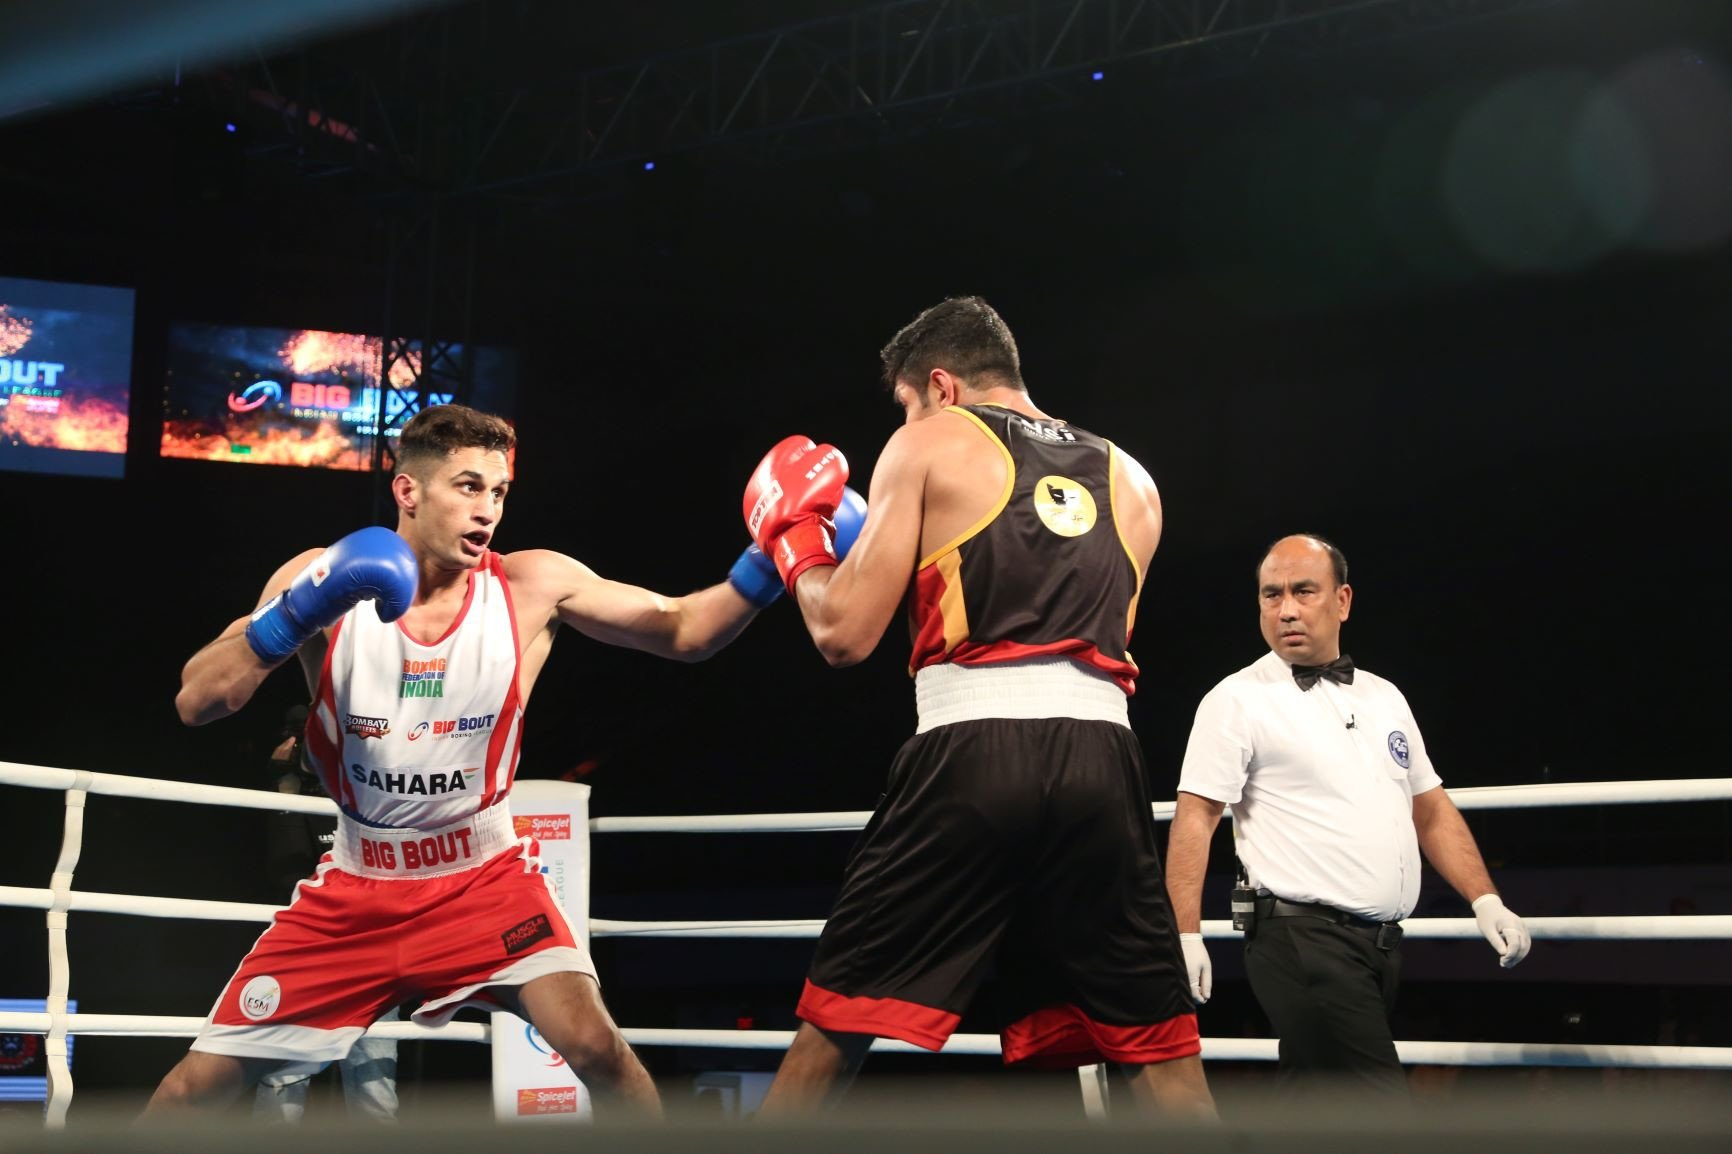 Big Bout Indian Boxing League: Bombay Bullets climb to the fourth spot with a 5-2 win